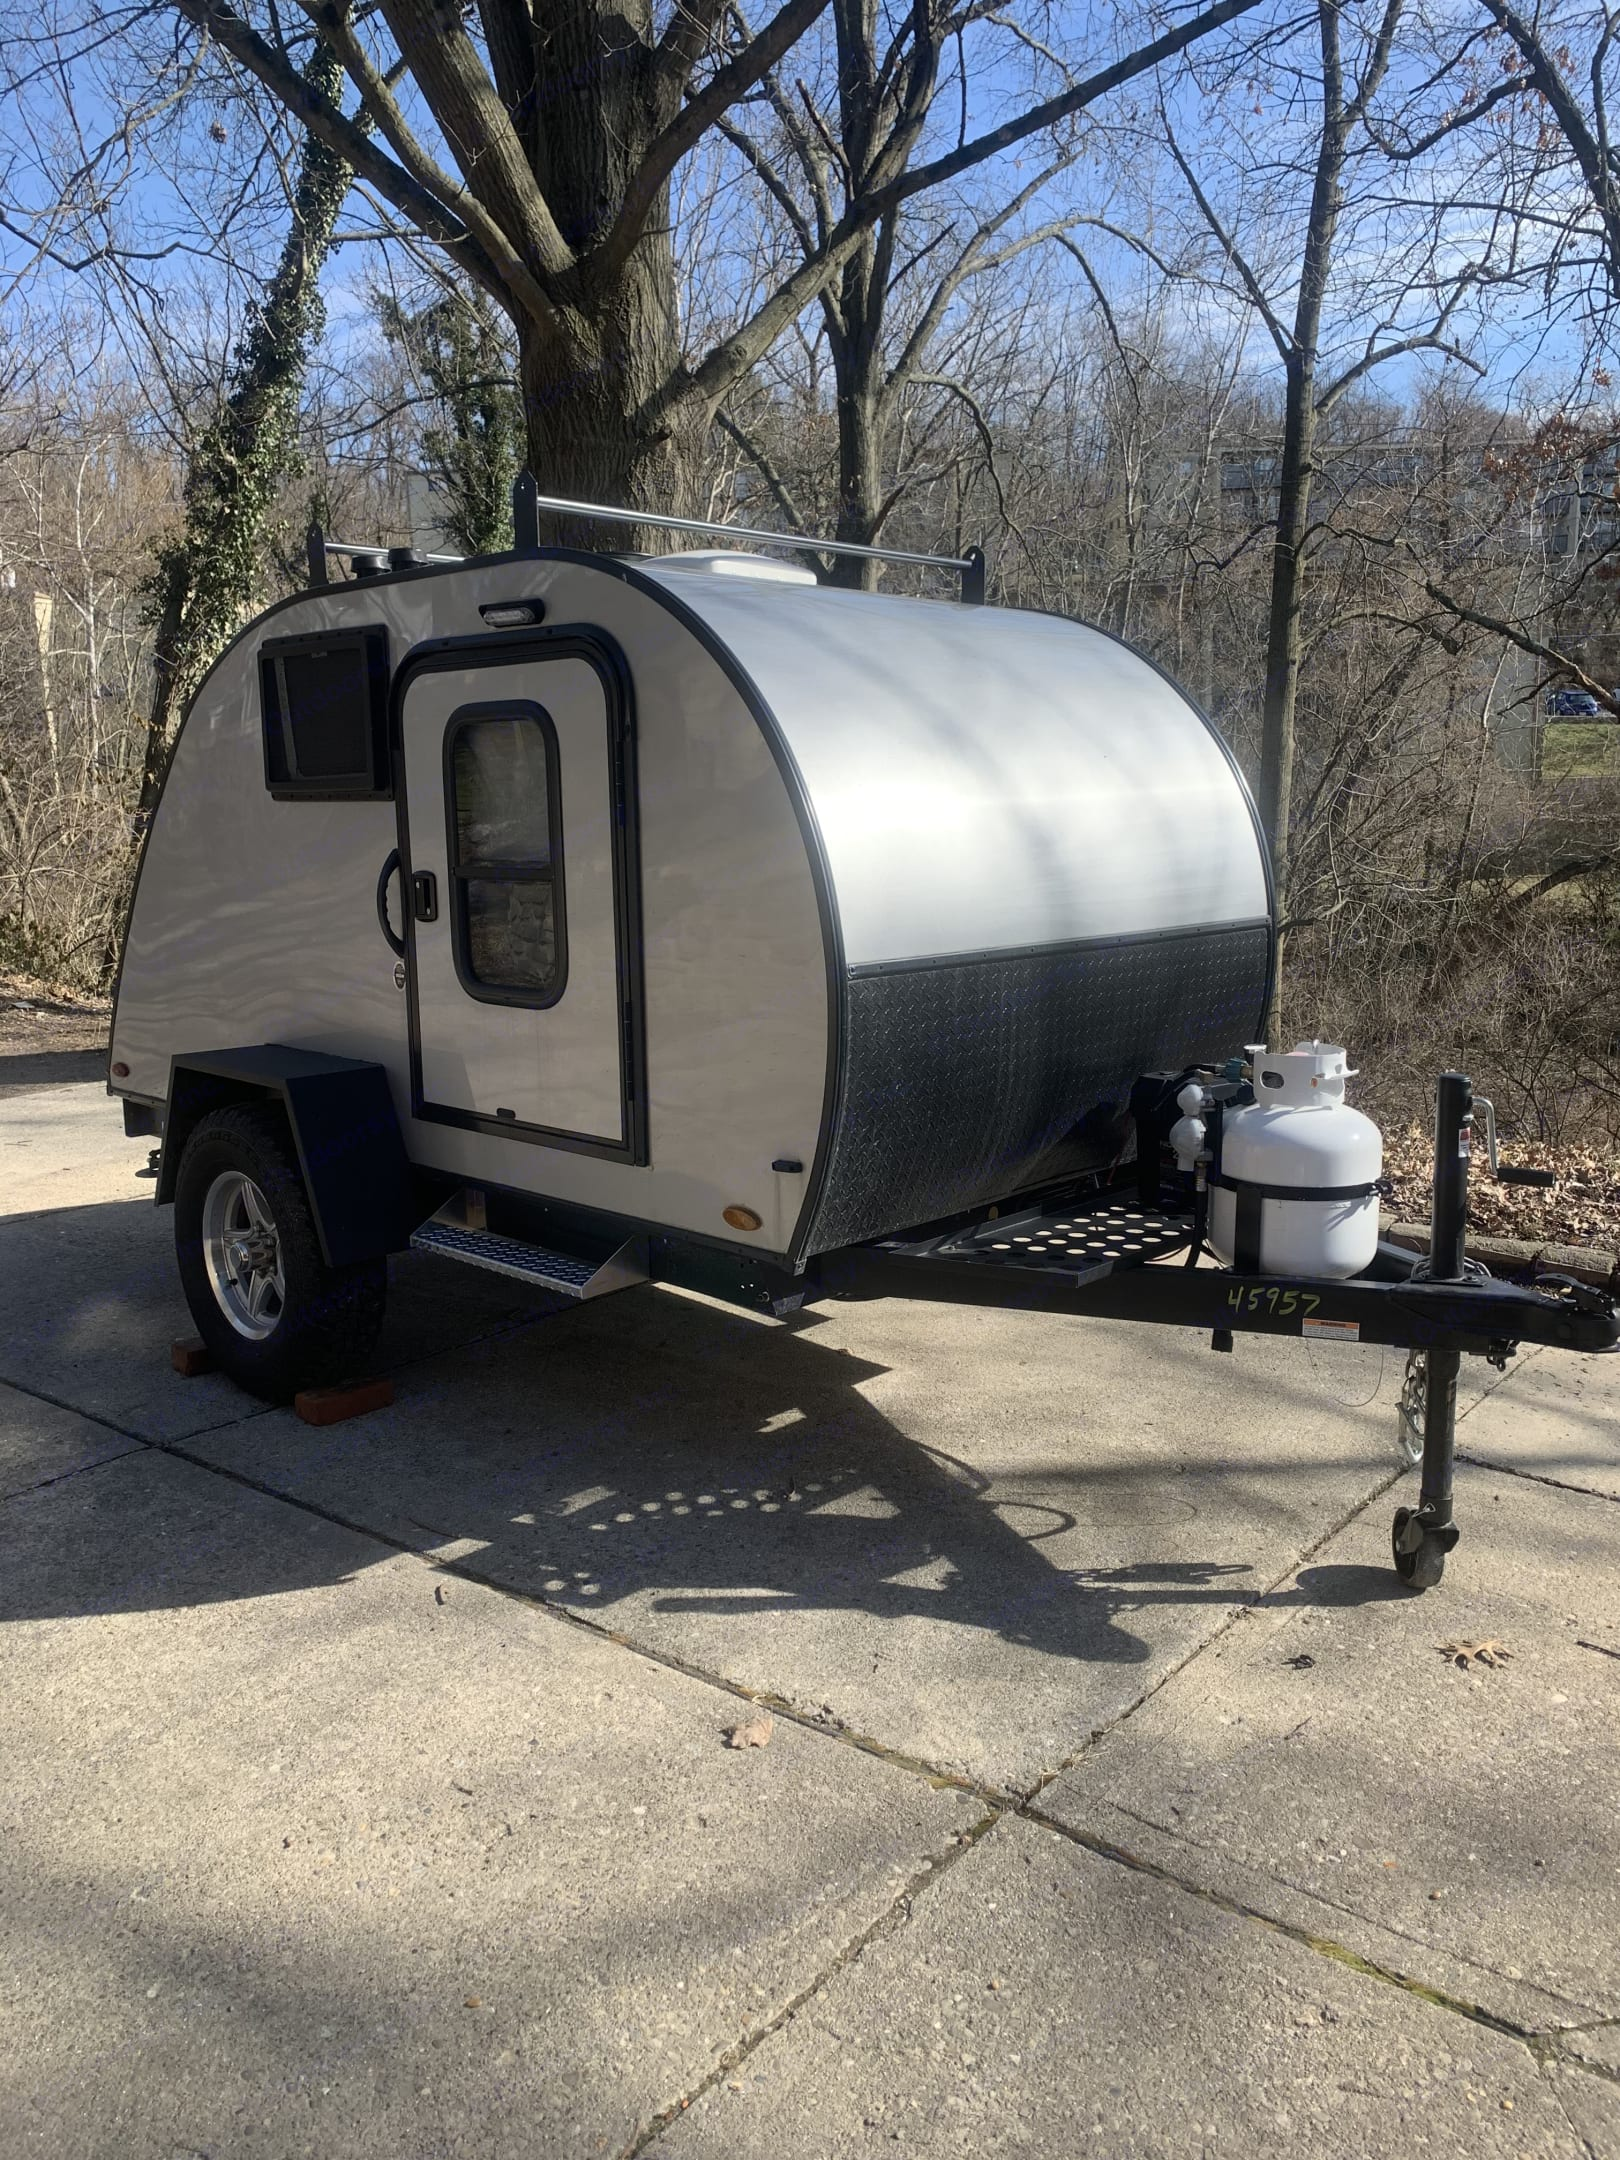 This rugged teardrop trailer is perfect for the couple looking to just getaway!!. Braxton Creek Bushwhacker Teardrop 10ss 2021